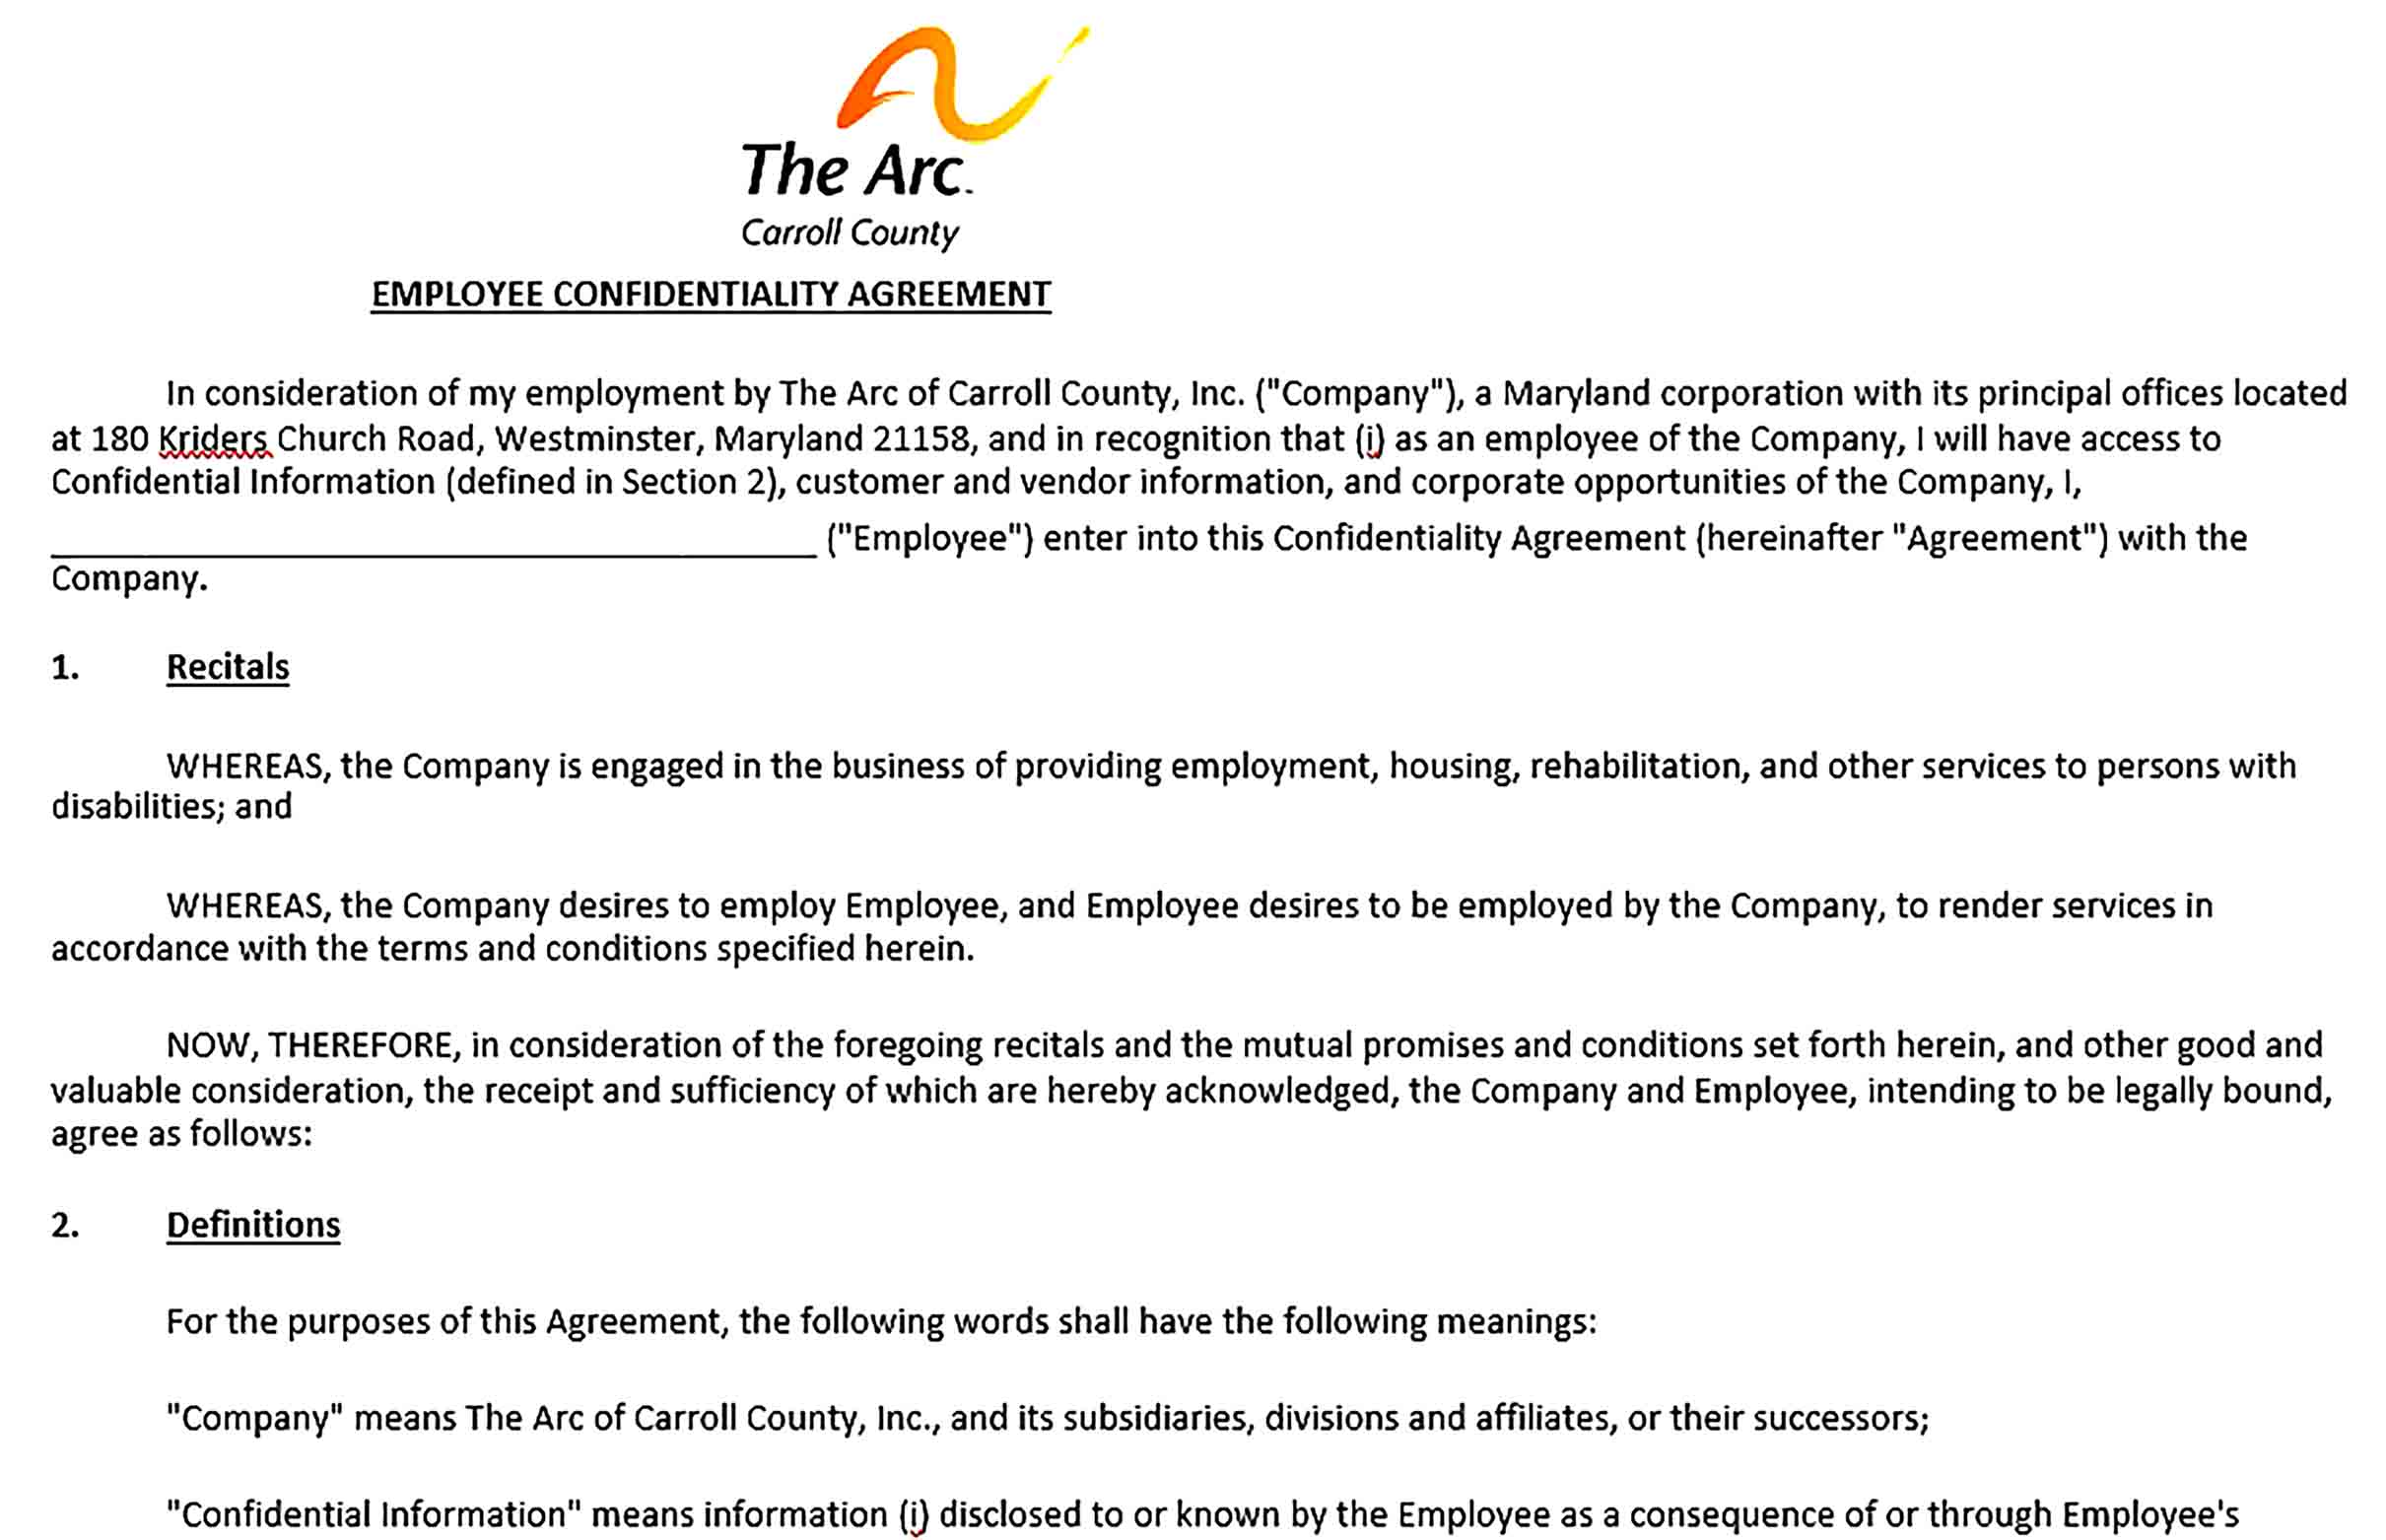 Sample Employee Confidentiality Agreement 002